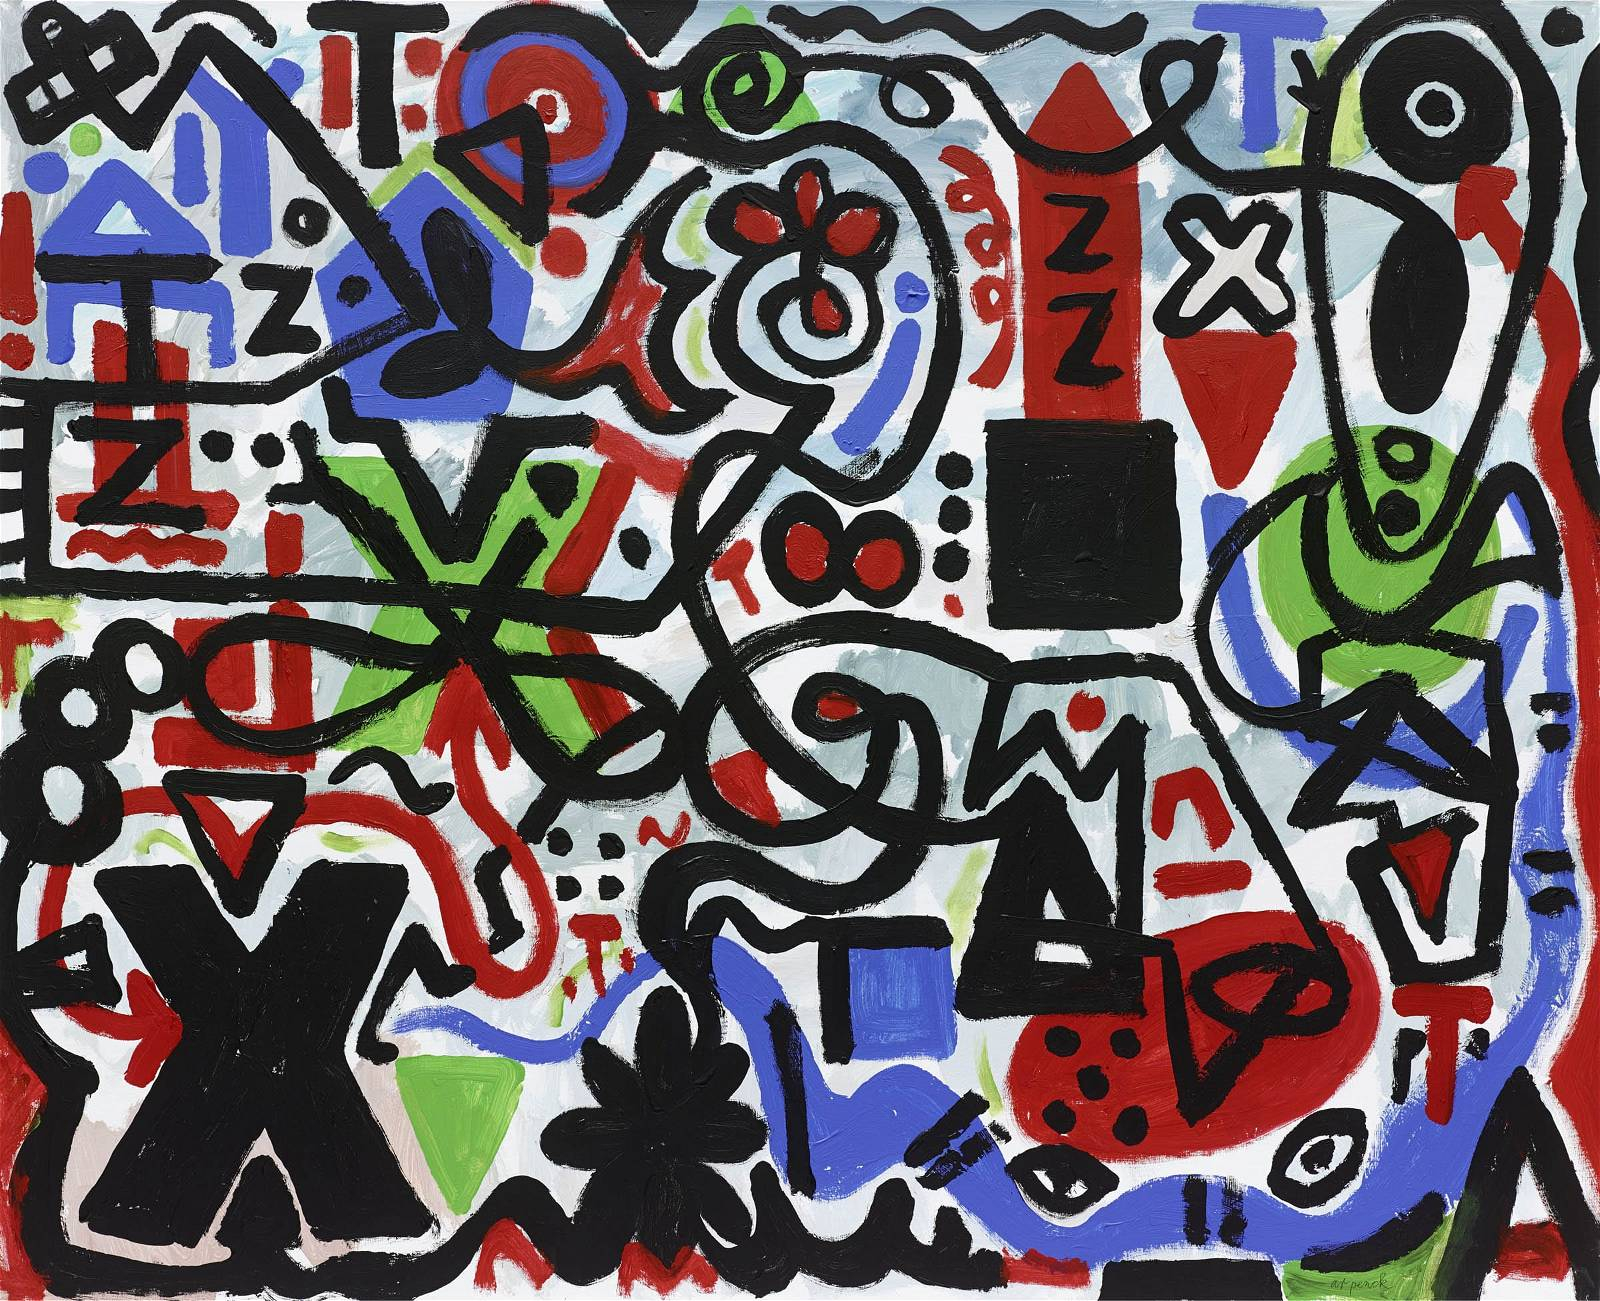 "A.R. Penck, ""Ungewissheit (Uncertainty)"", 2011. Acrylic on canvas, 51 1/4 x 63 inches (130 x 160 cm)"